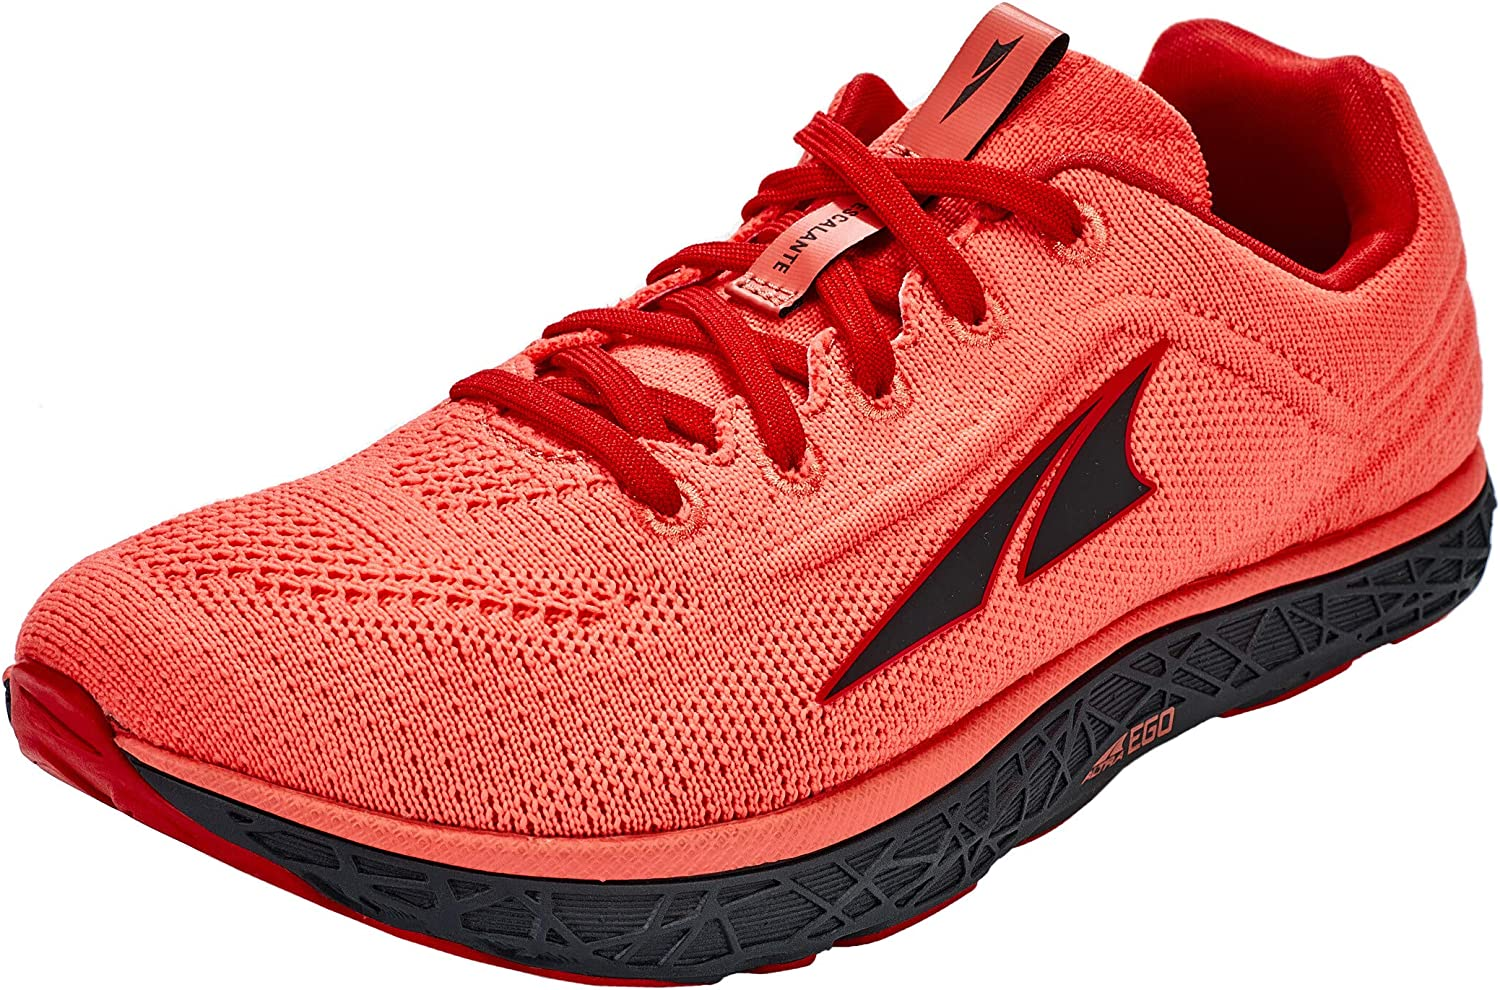 ALTRA Women's AL0A4VR3 Super intense SALE Escalante Road Shoe Running Special price for a limited time 2.5